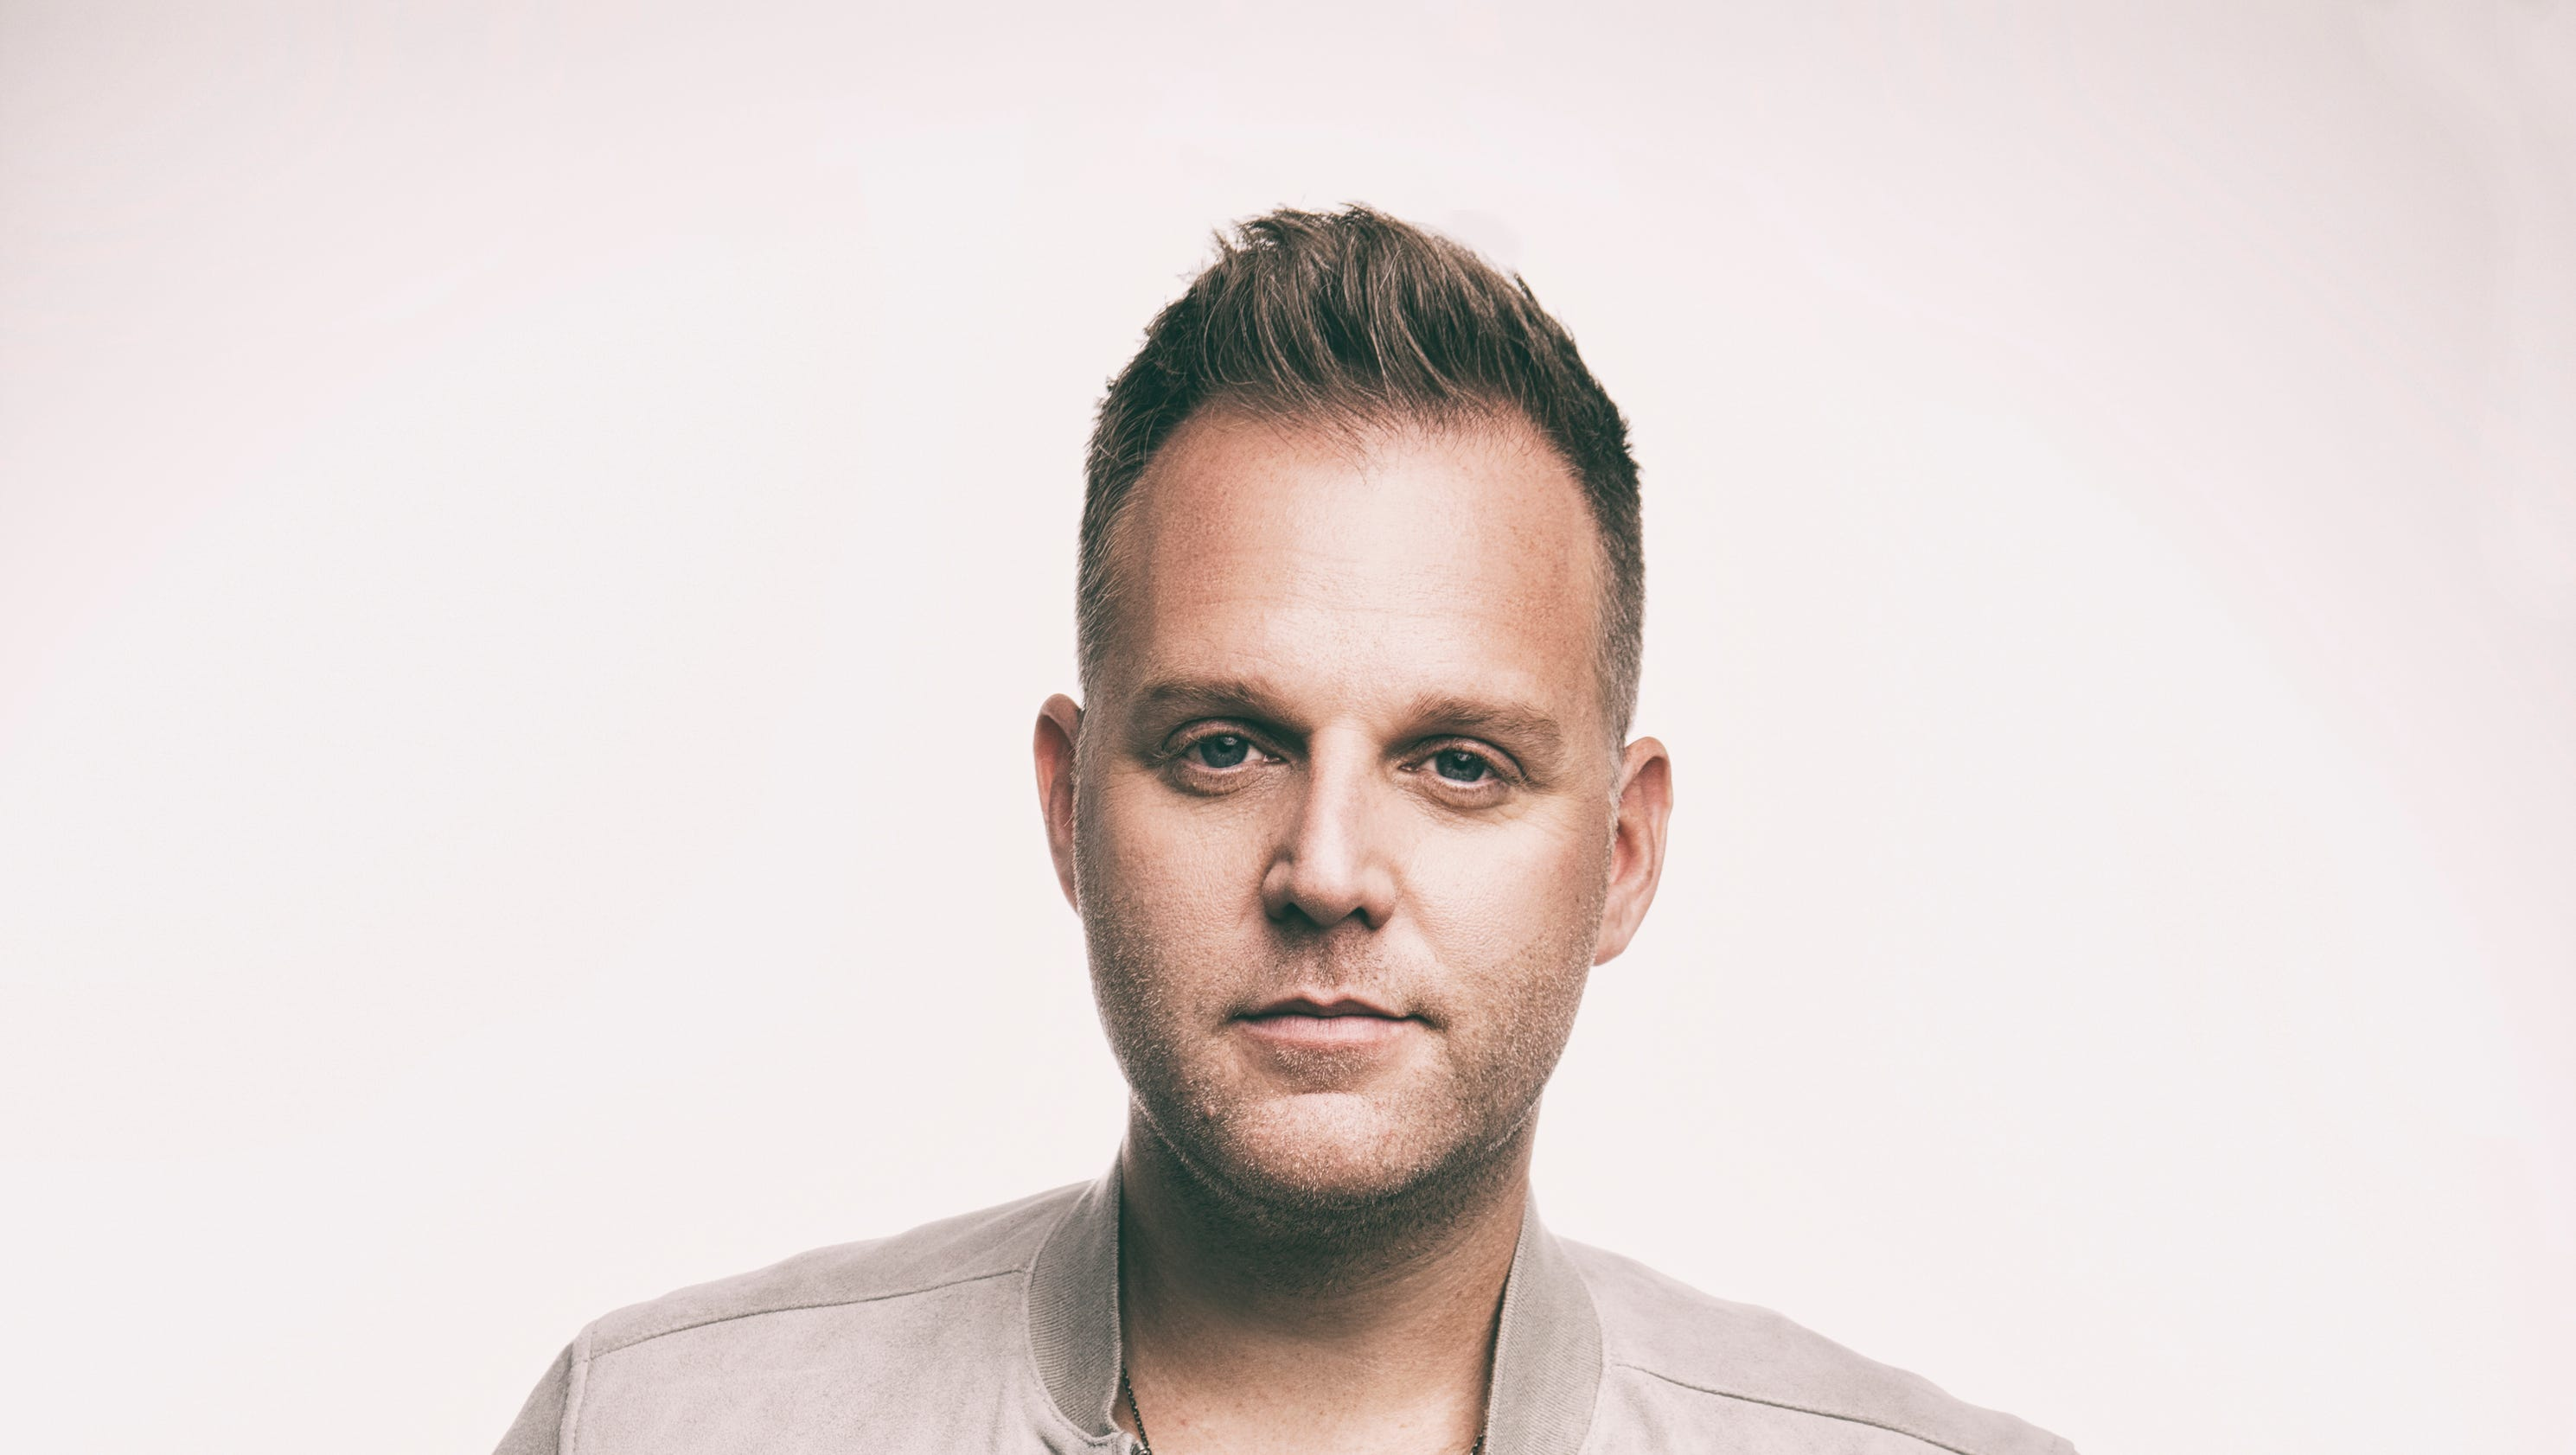 Matthew West searches for balance of faith and family